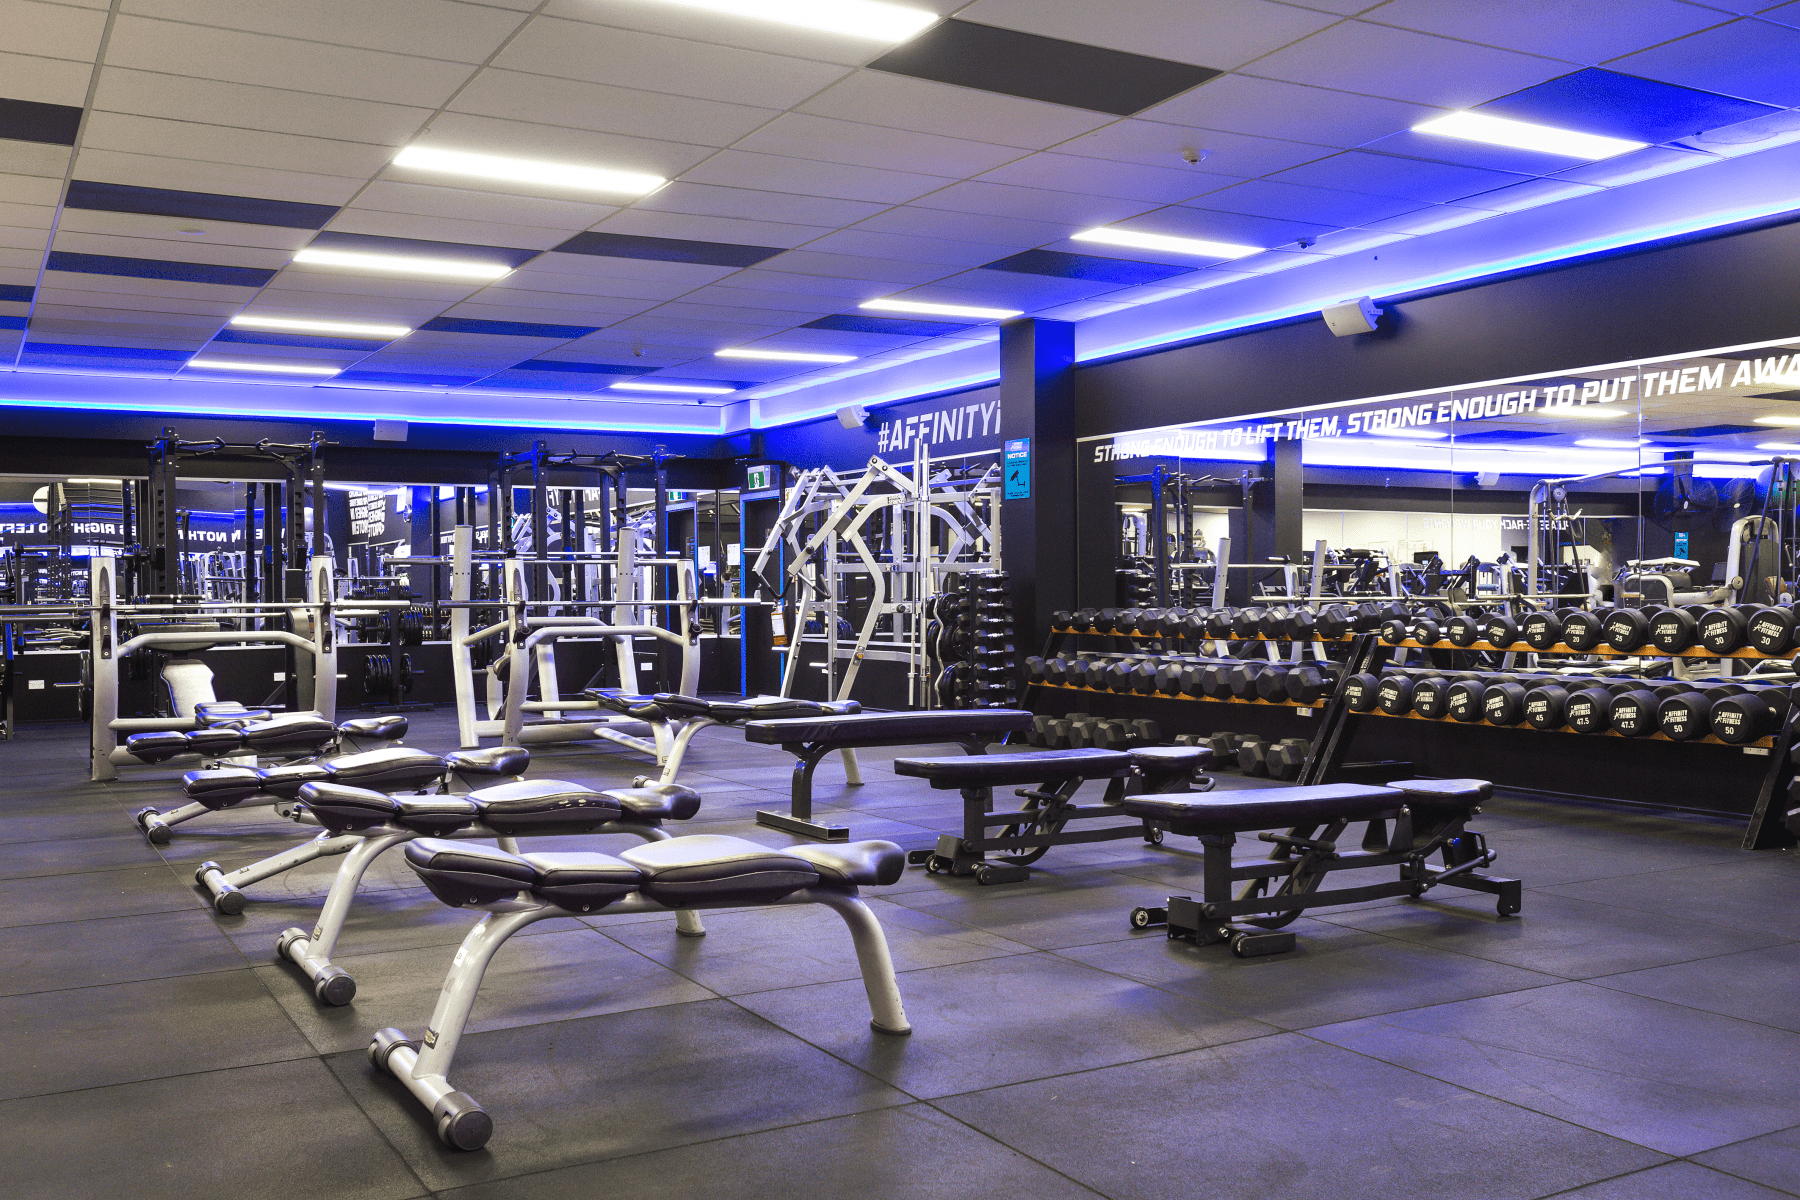 Weight Lifting Area - Weights & exercise machines